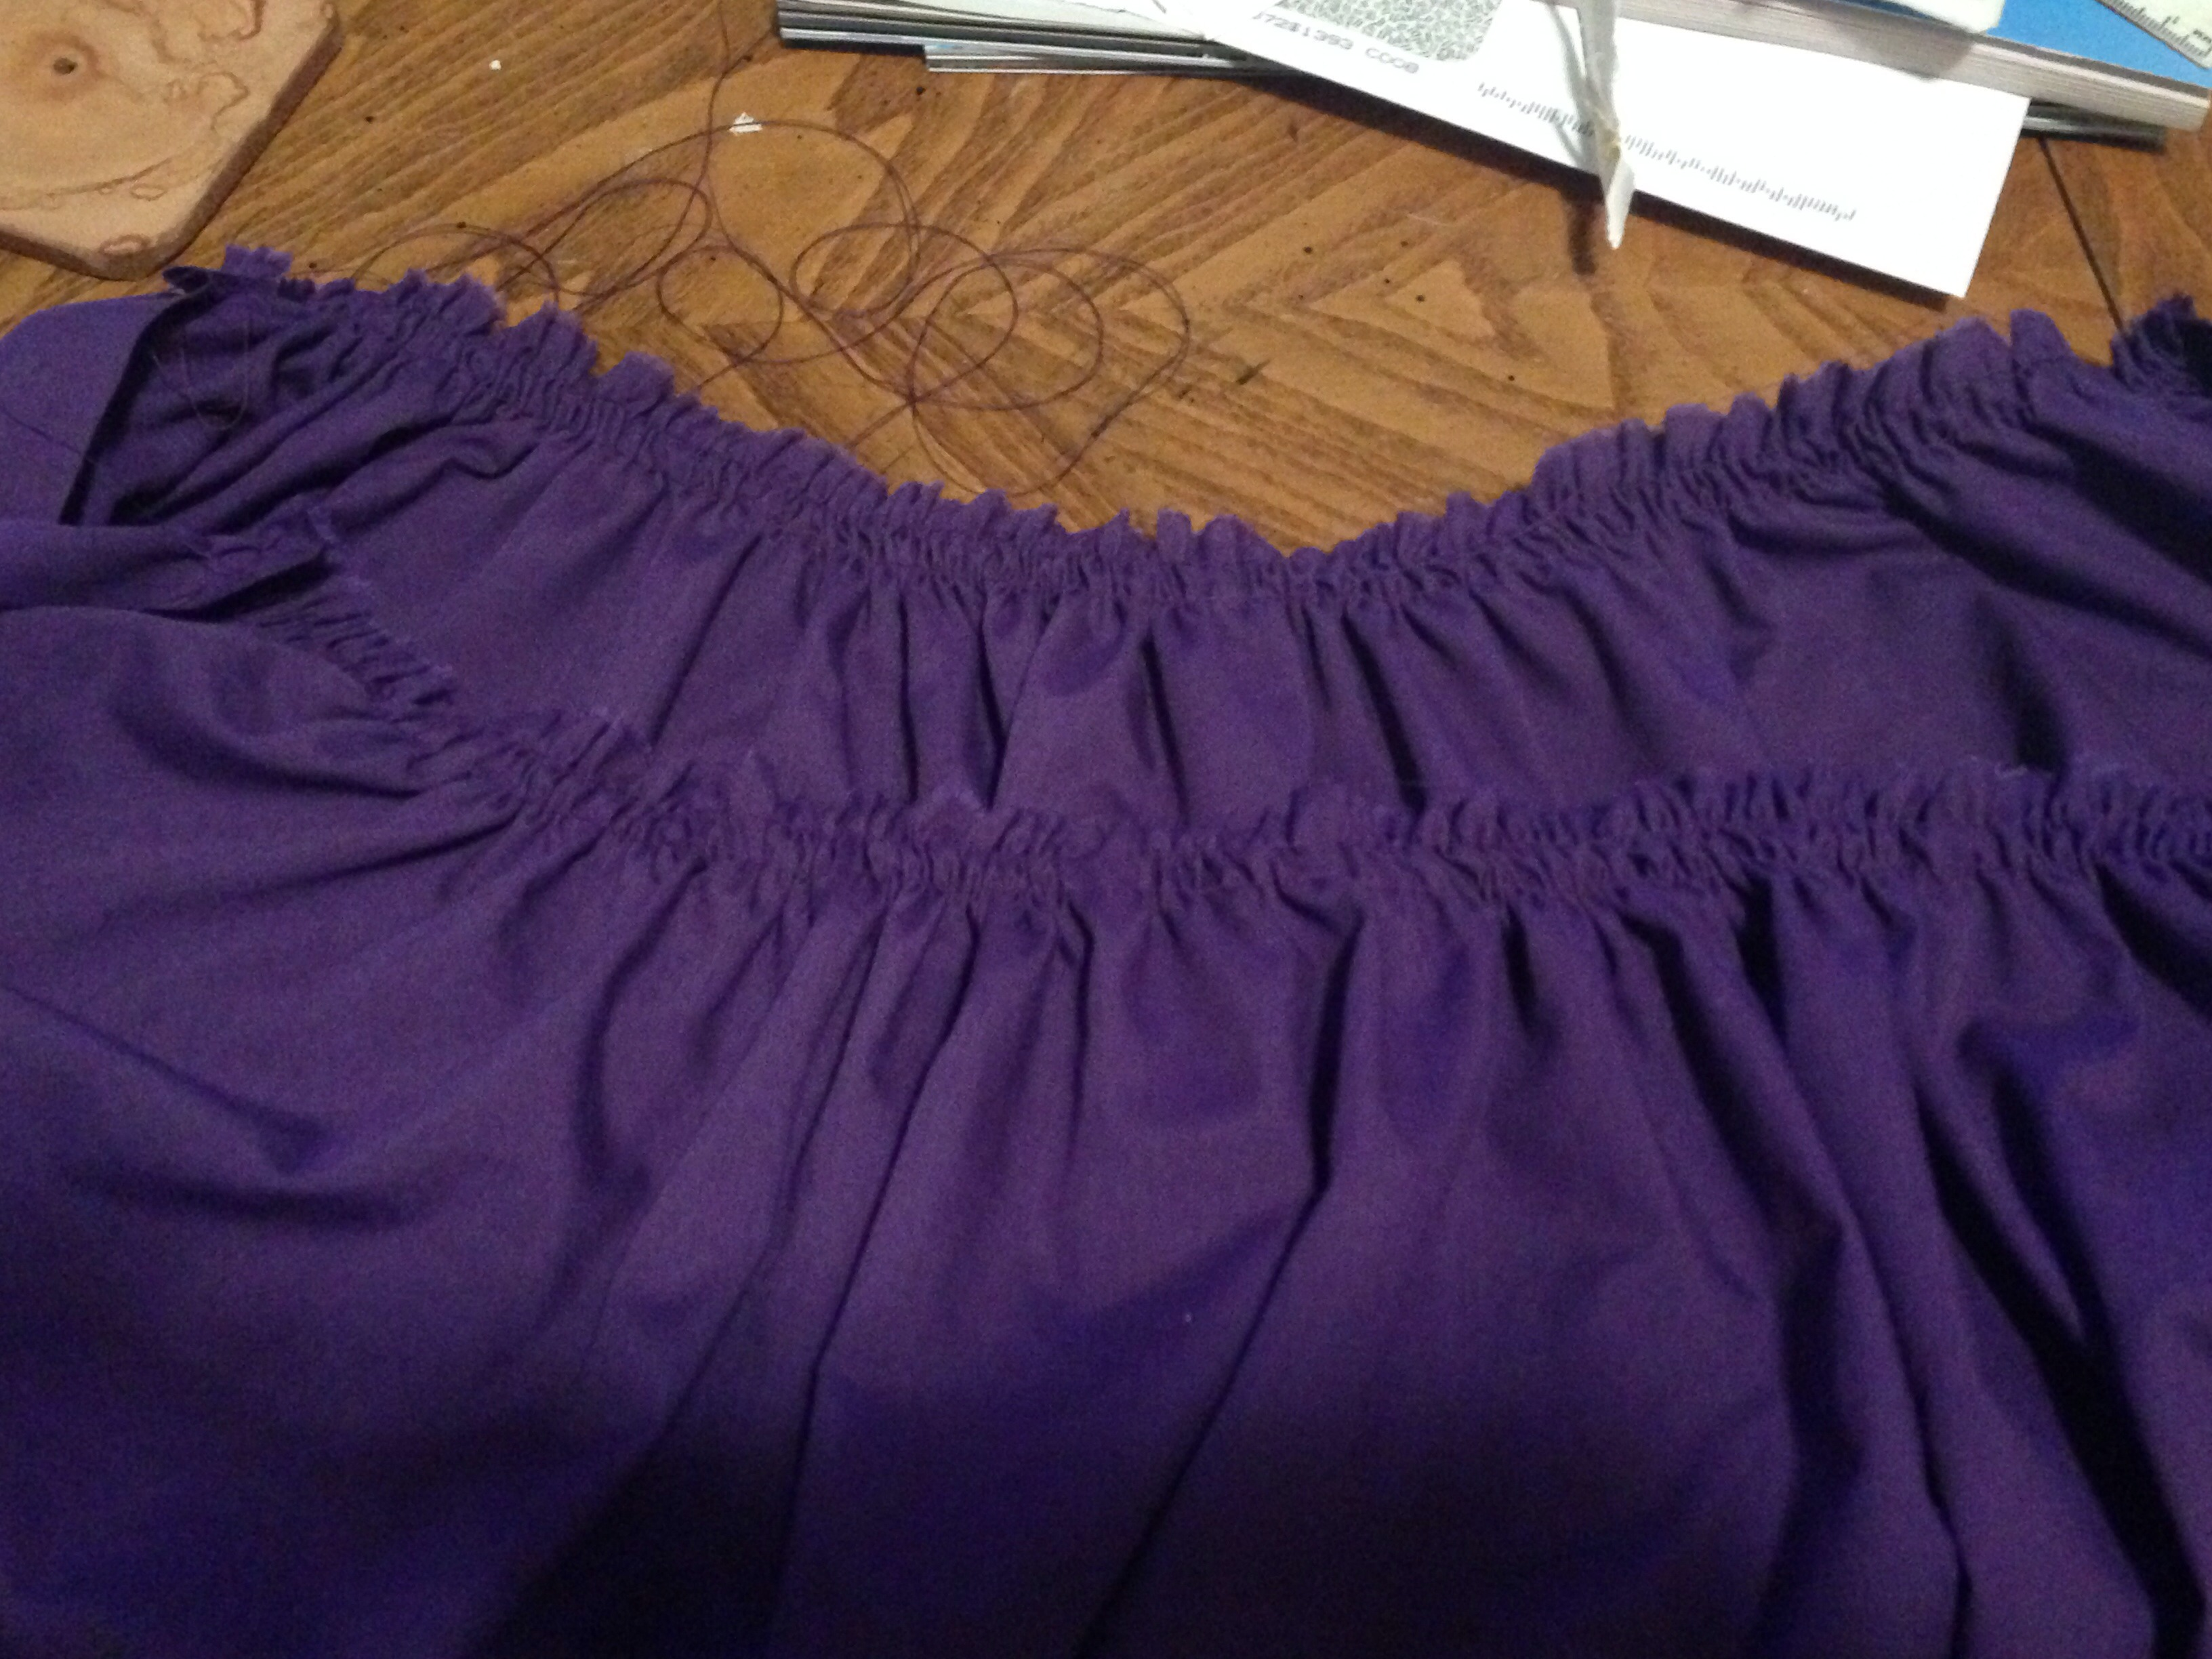 Picture of Cut and Sew the Skirt!